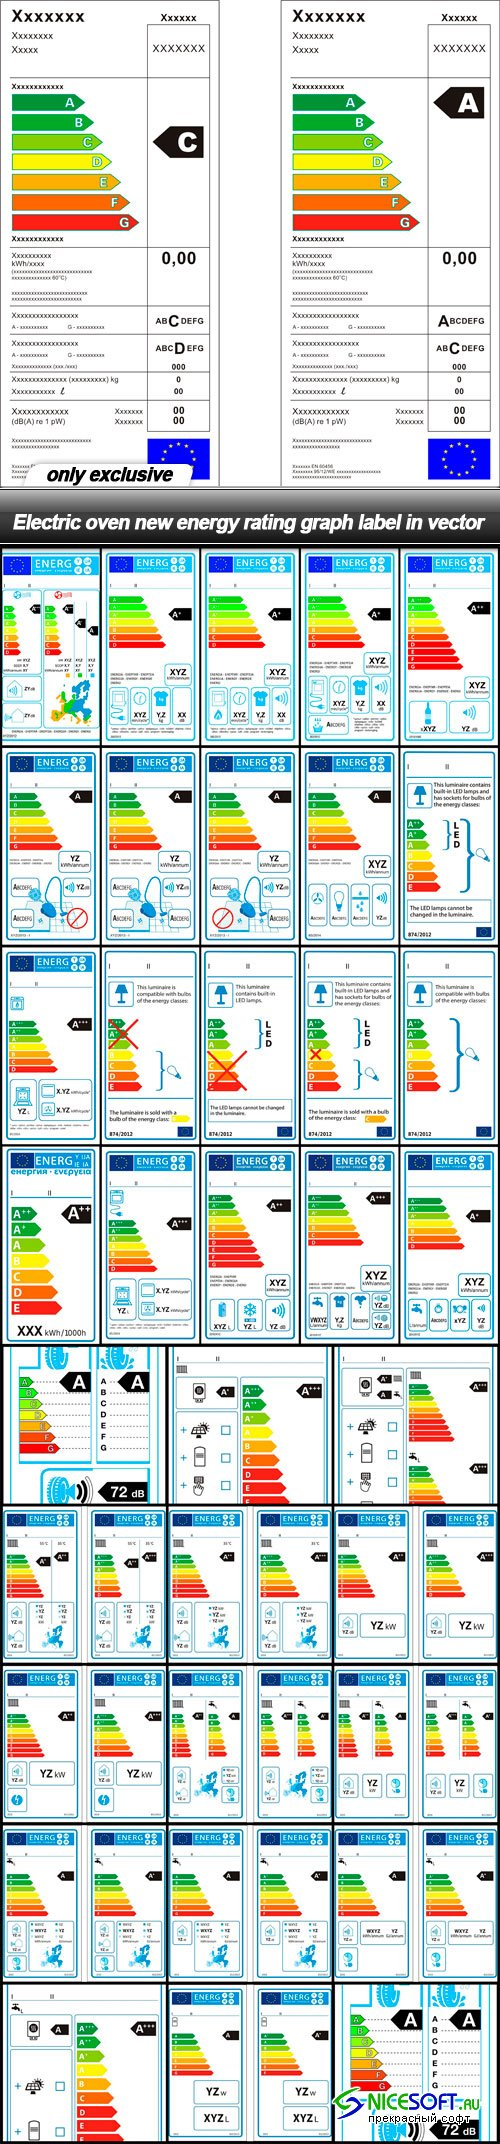 Electric oven new energy rating graph label in vector